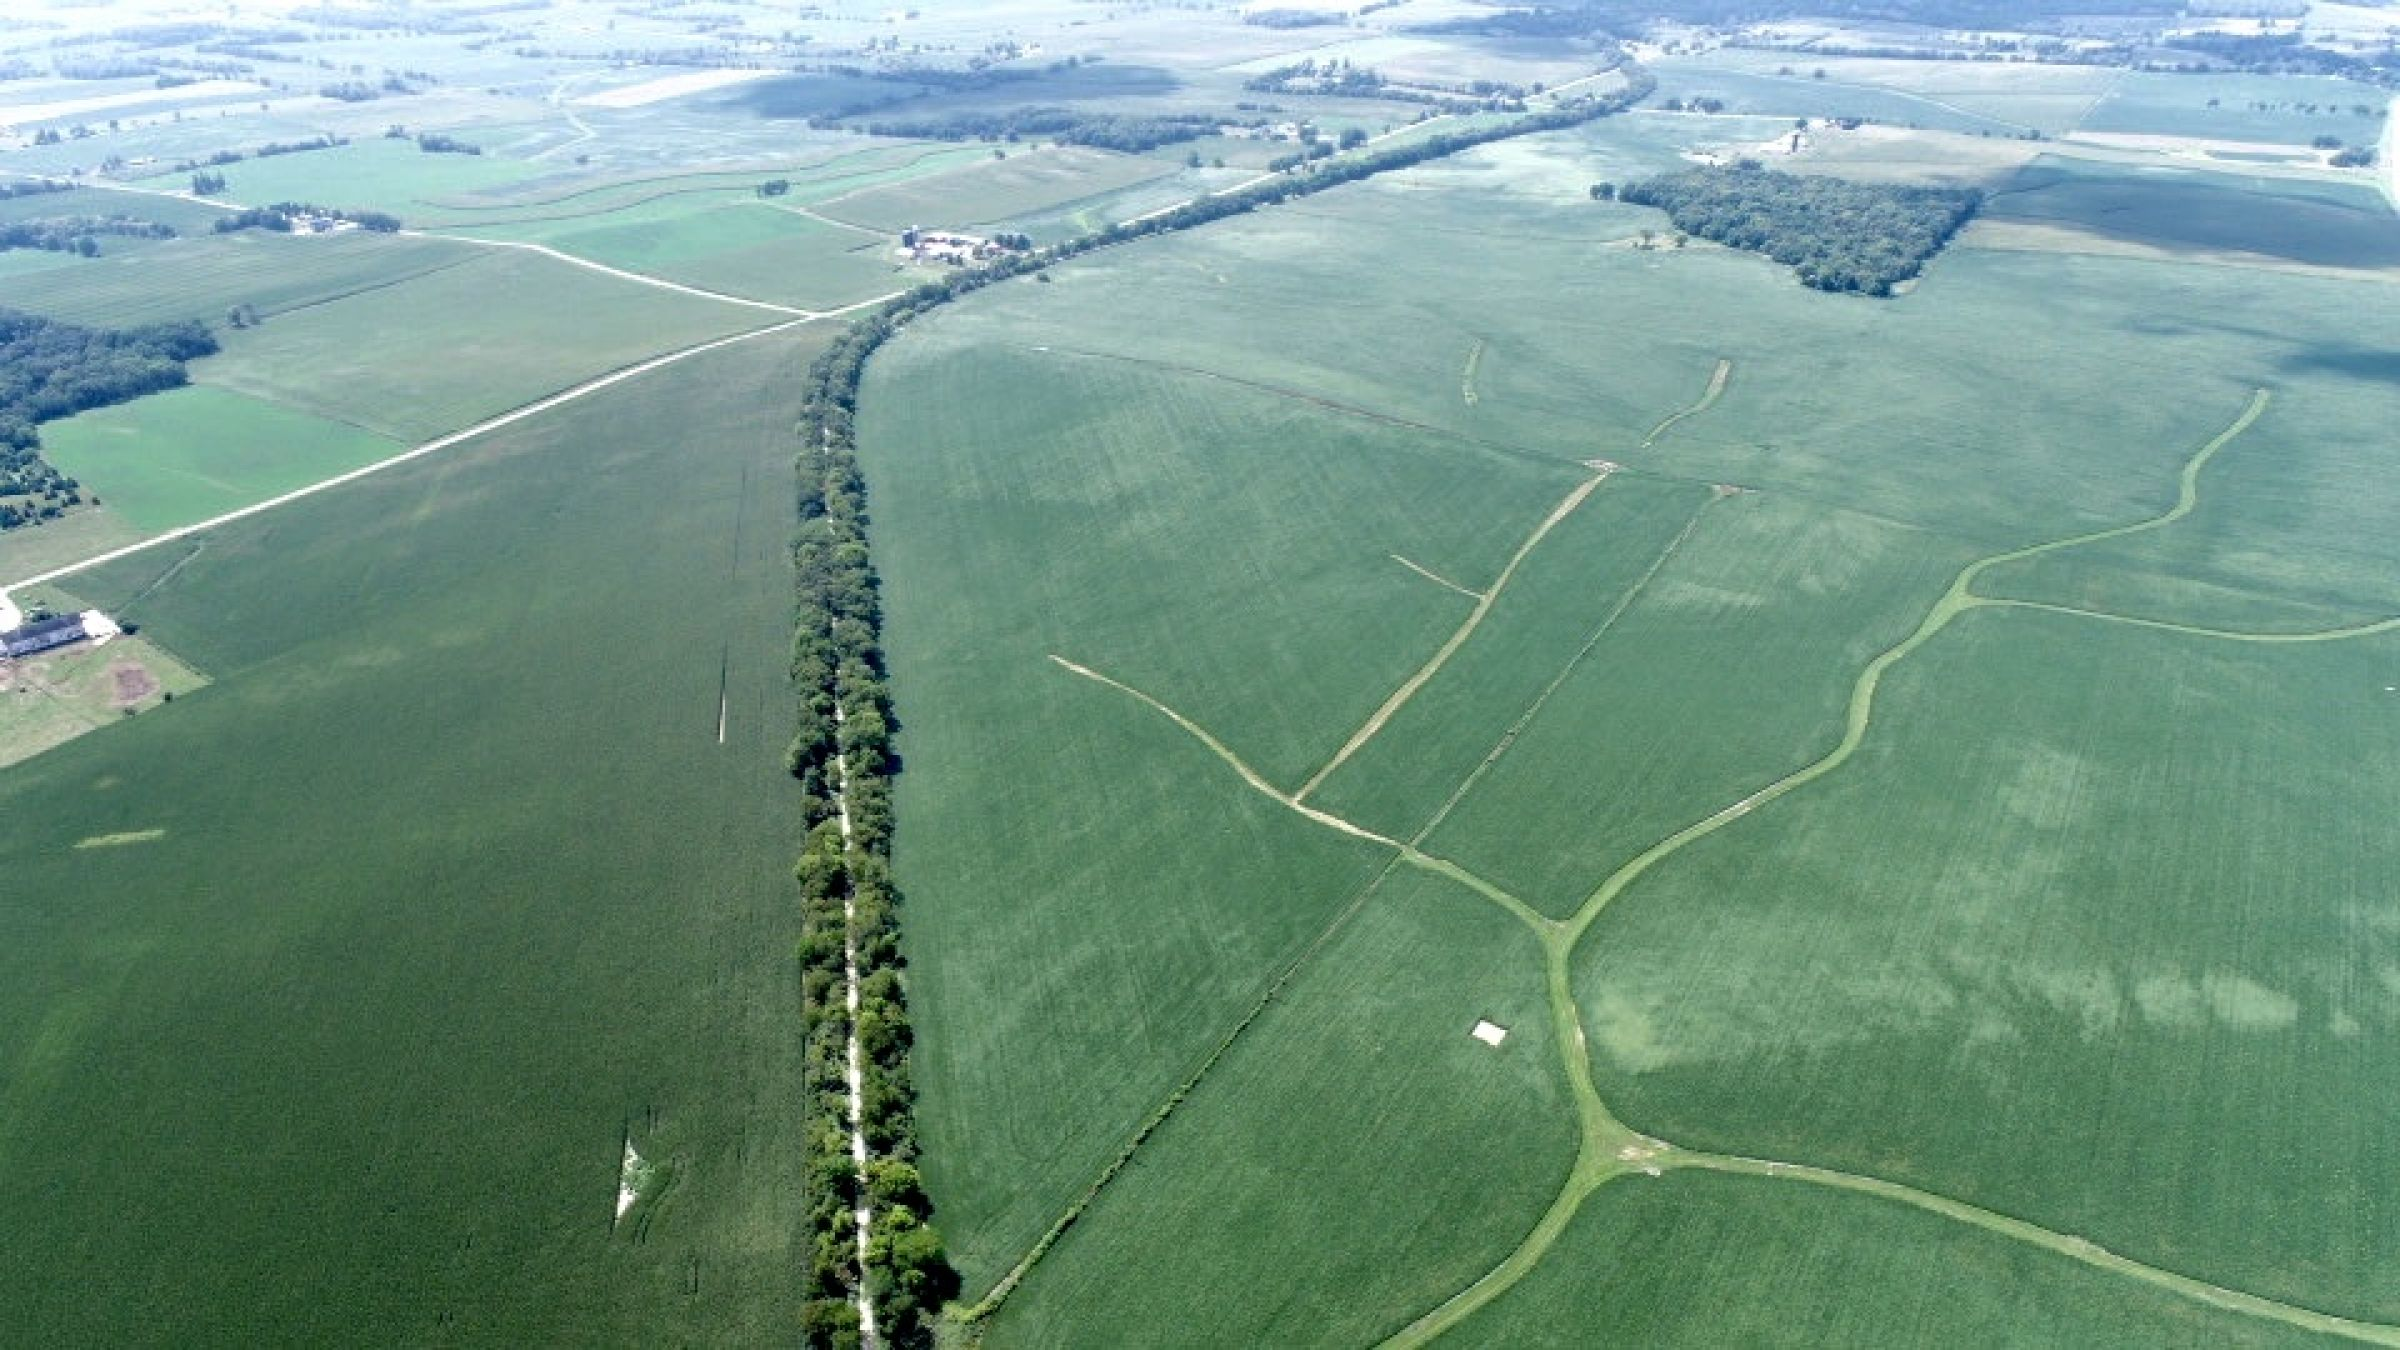 land-green-county-wisconsin-80-acres-listing-number-15692-6-2021-08-19-205613.jpg